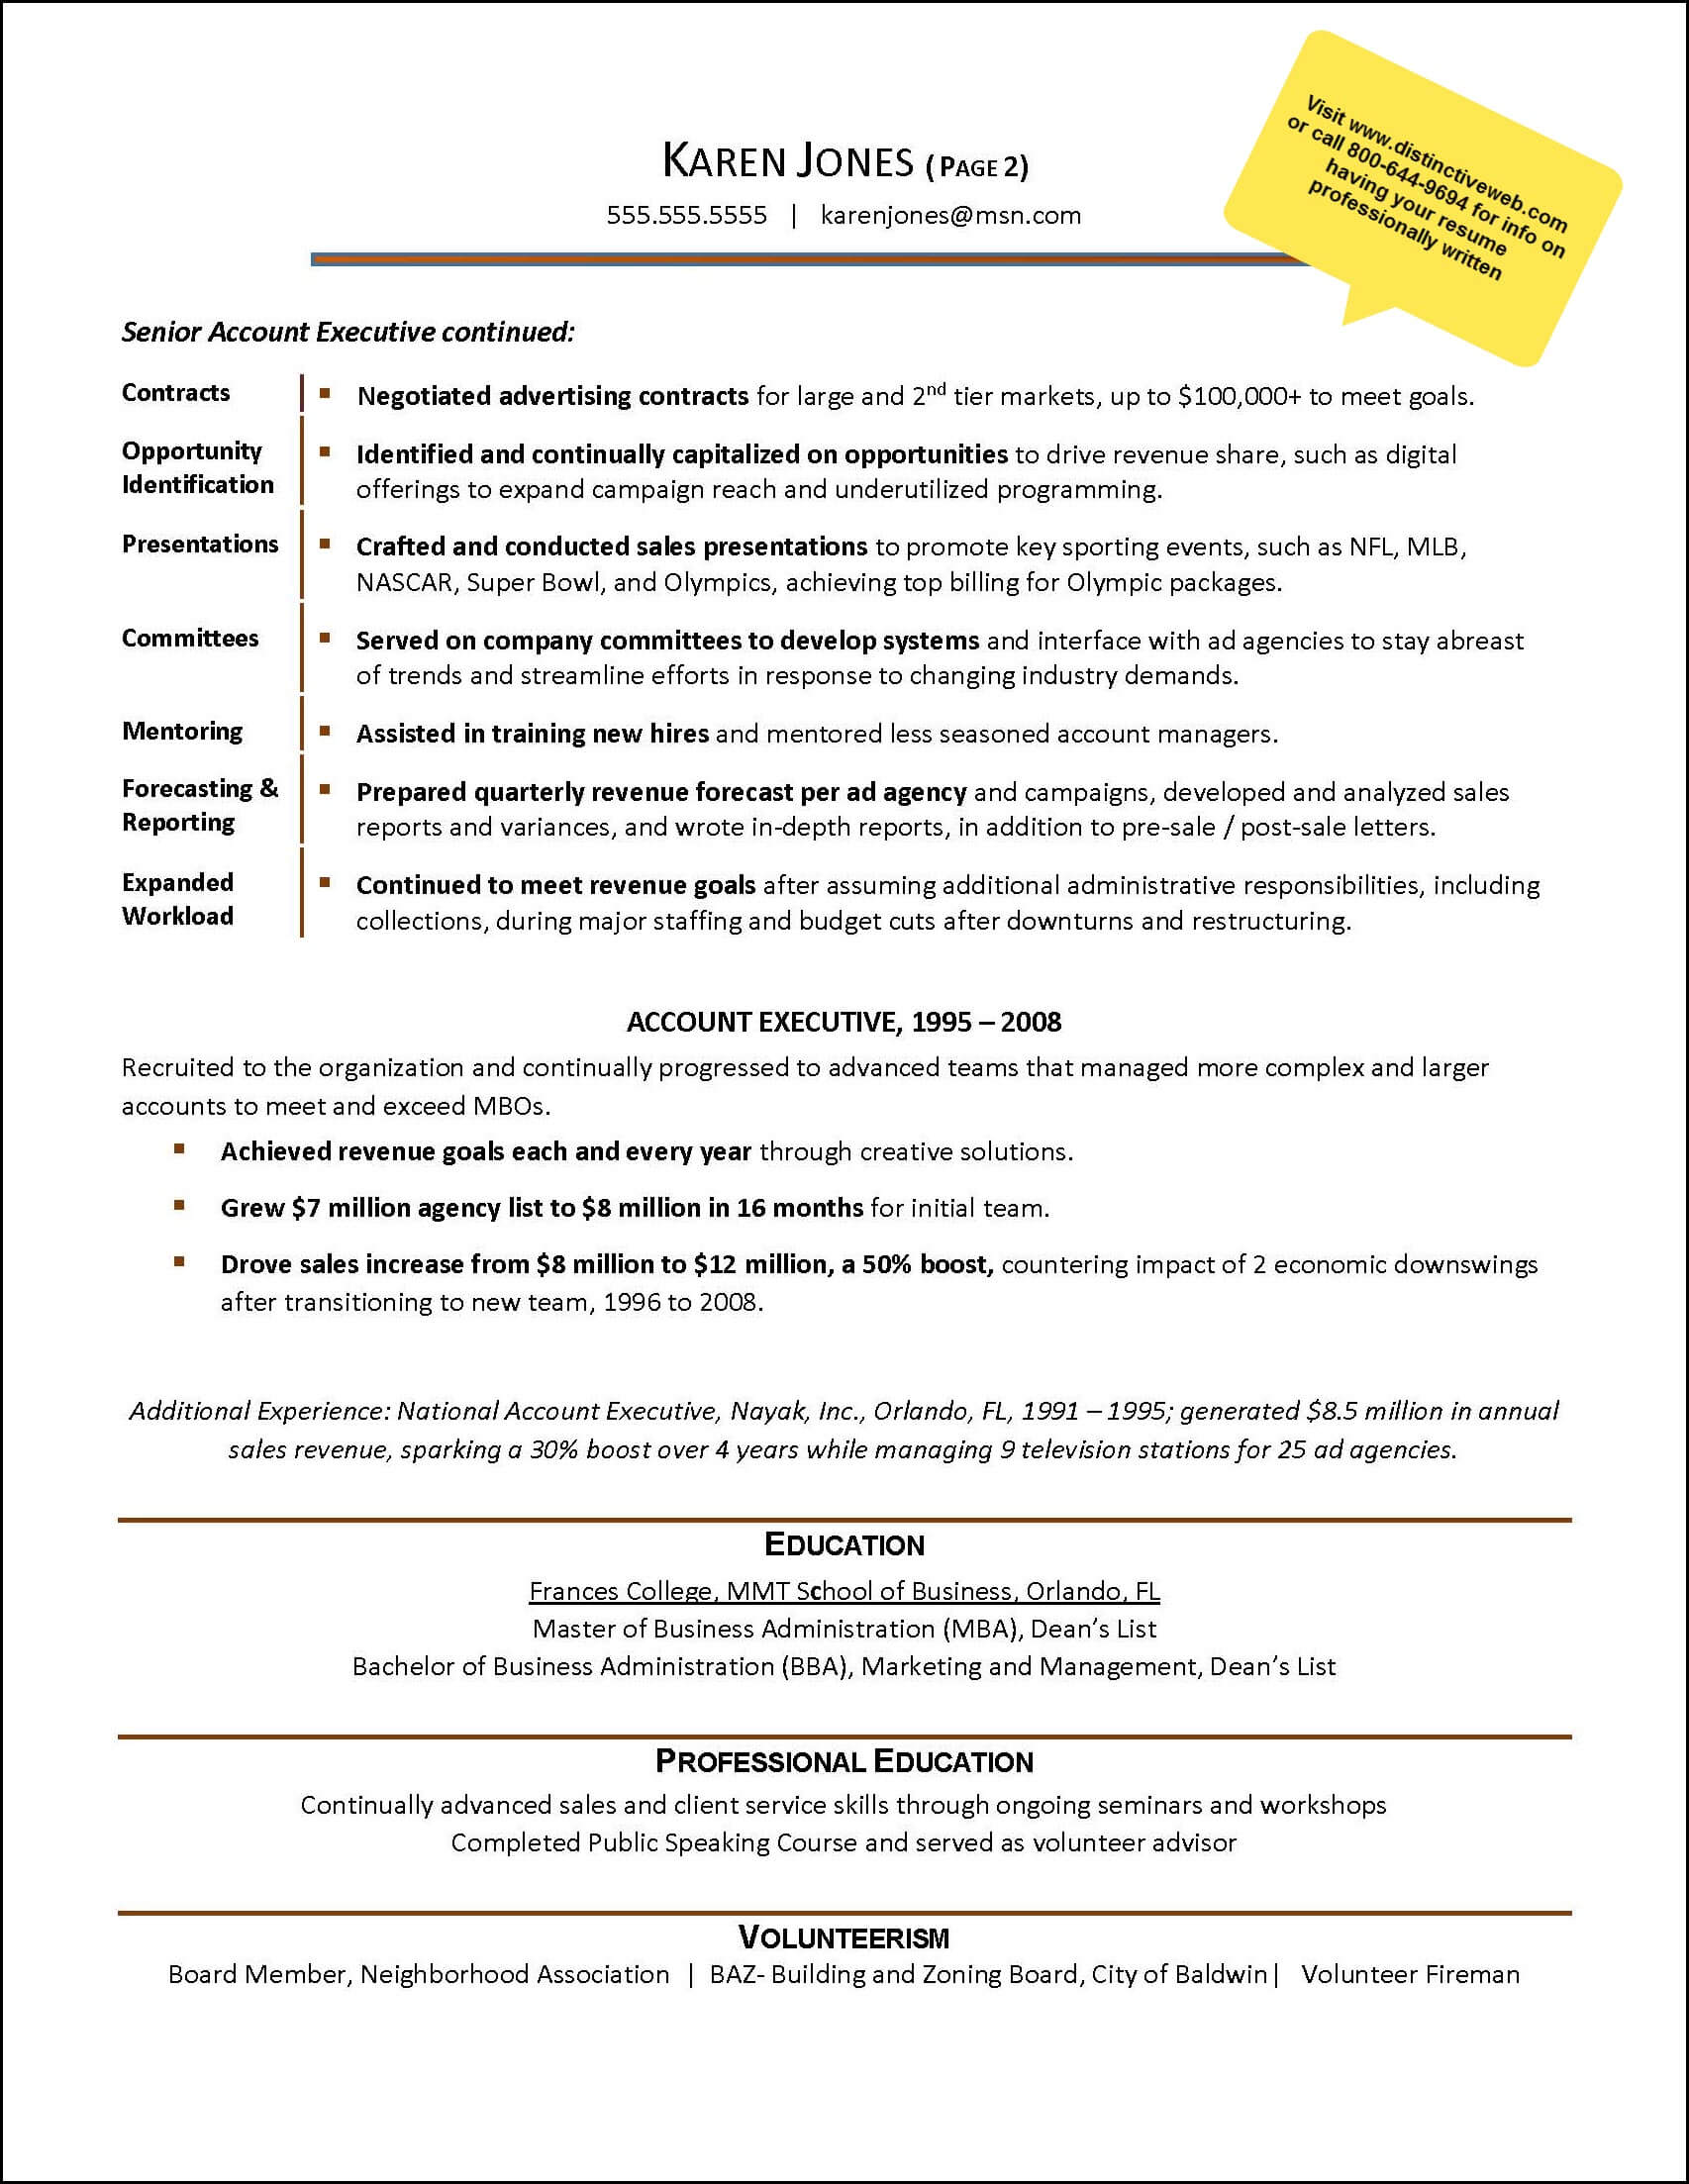 advertising agency example resume sample resume written to help an advertising industry account executive advance her career page 2